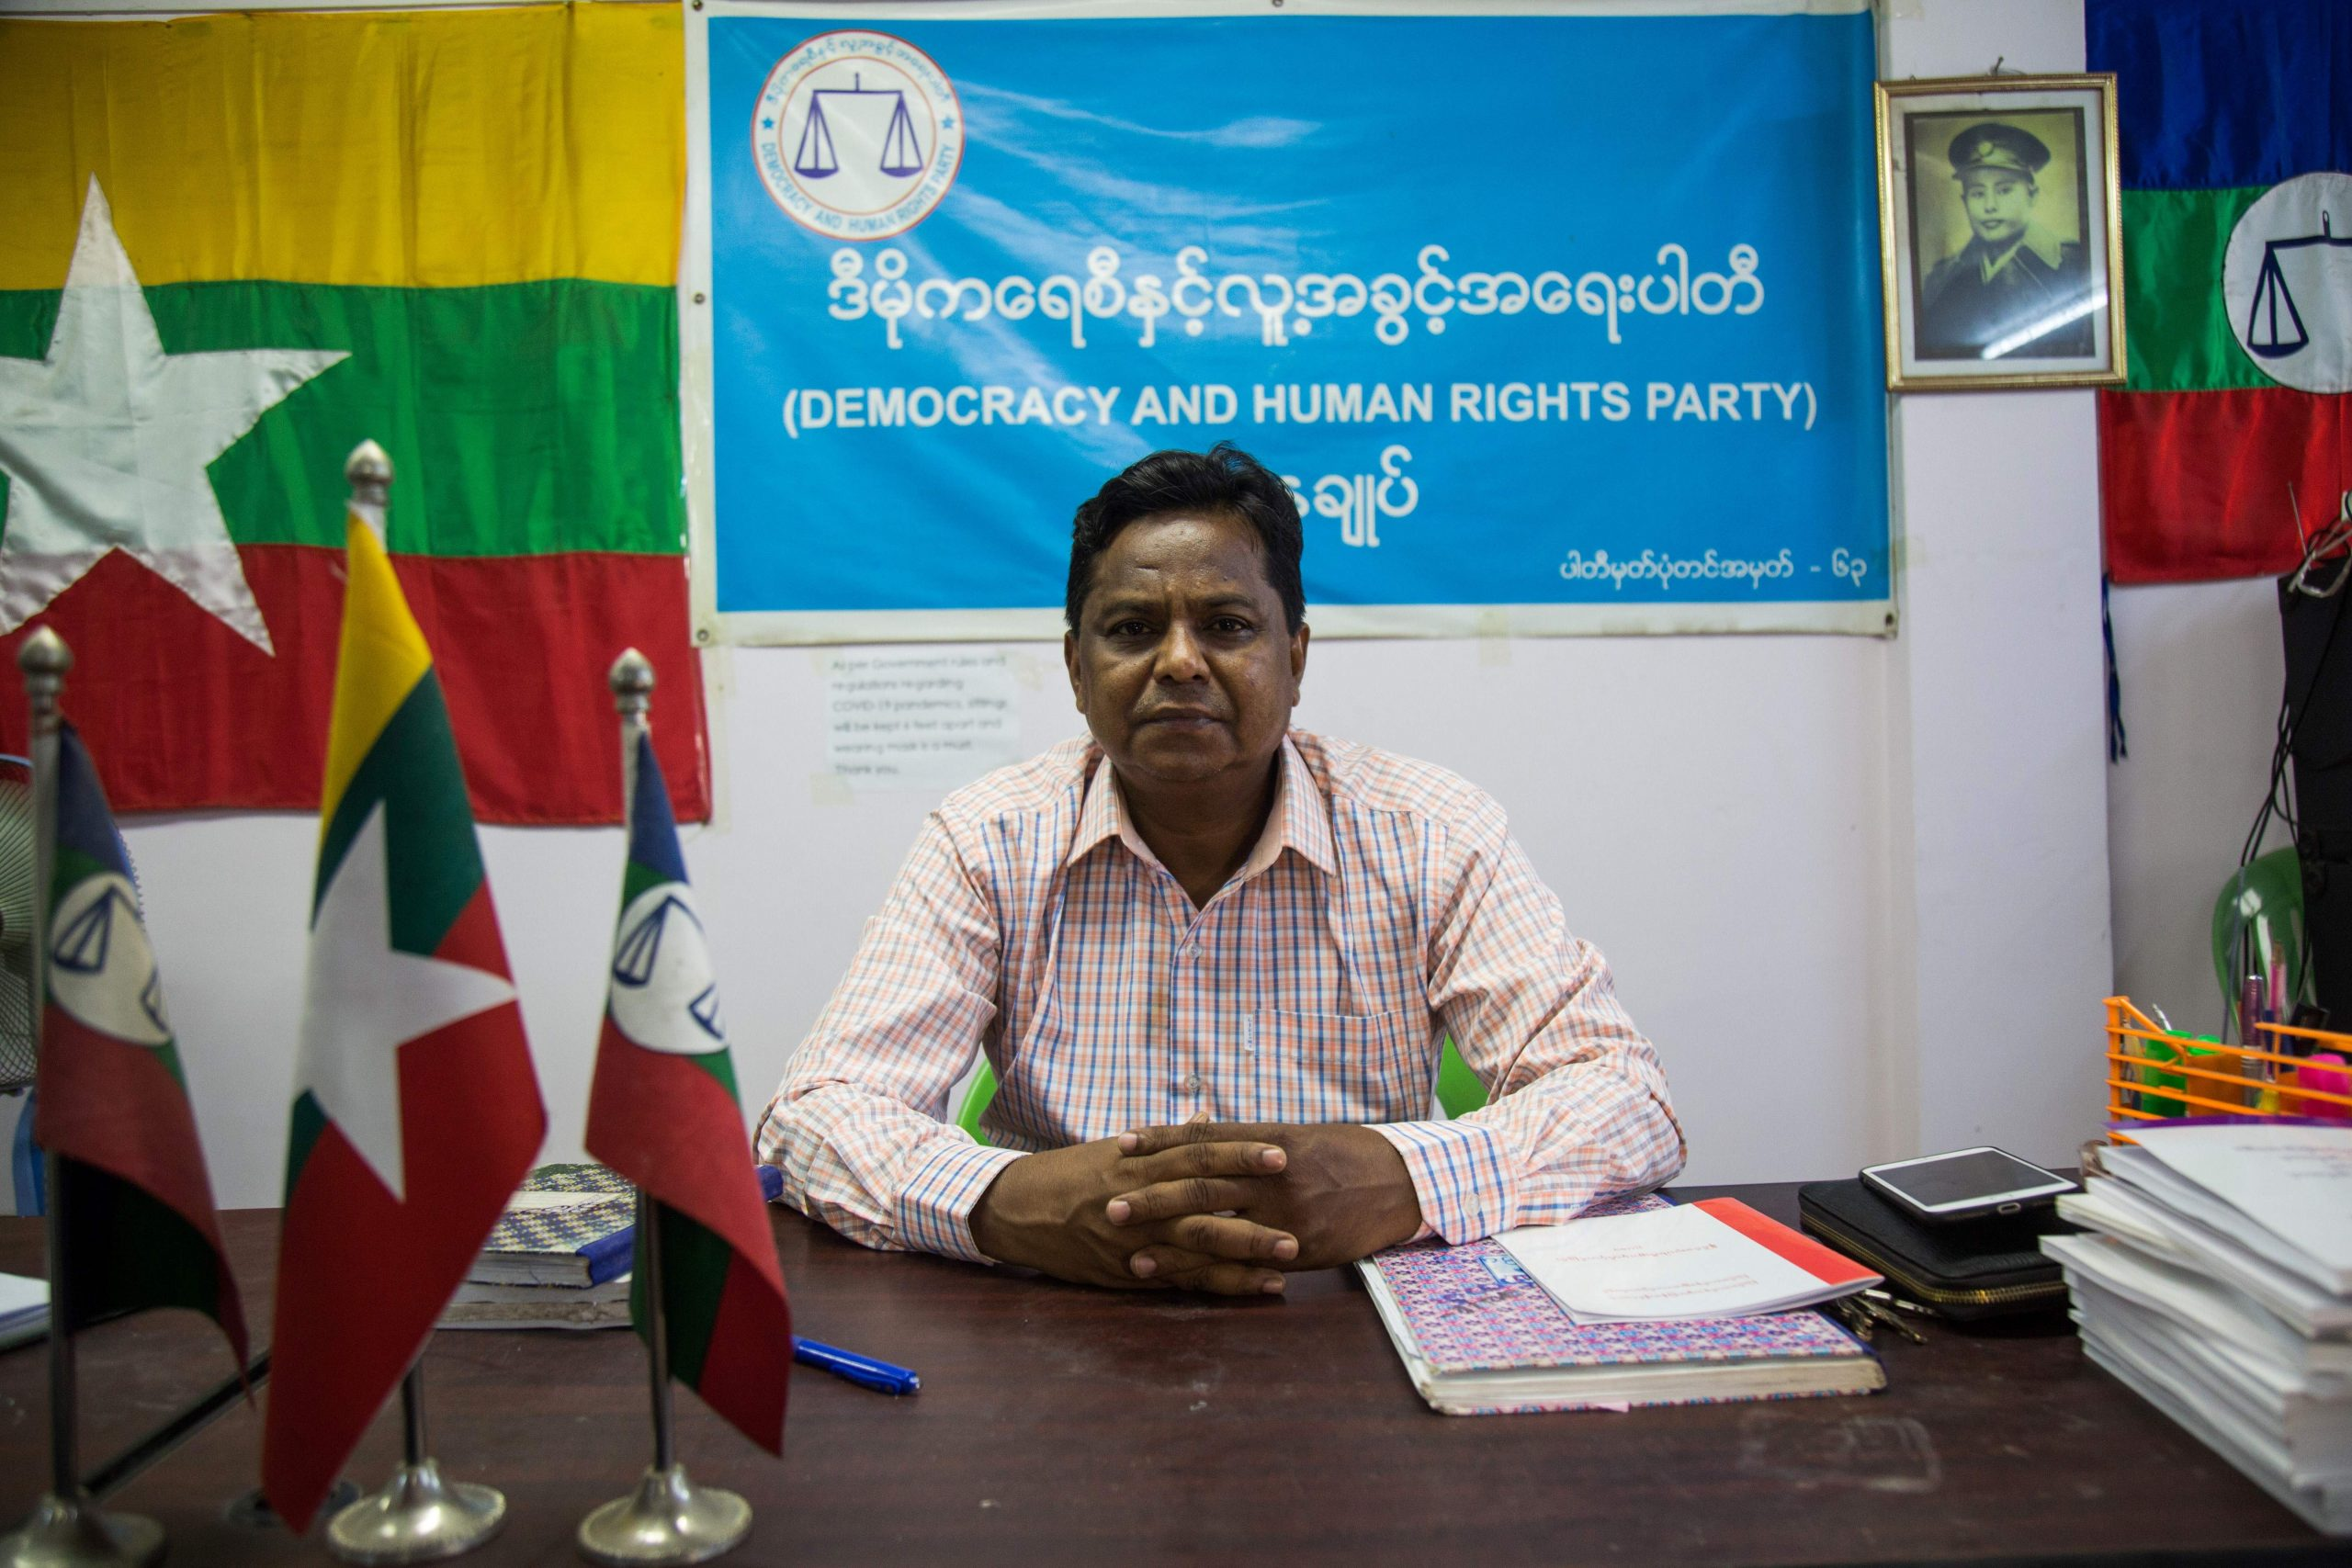 Rohingya candidate Abdul Rasheed, a member of the Democracy and Human Rights Party, poses for a photo in the party's office in Yangon on August 12, 2020. (Photo by SAI AUNG MAIN/AFP via Getty Images)